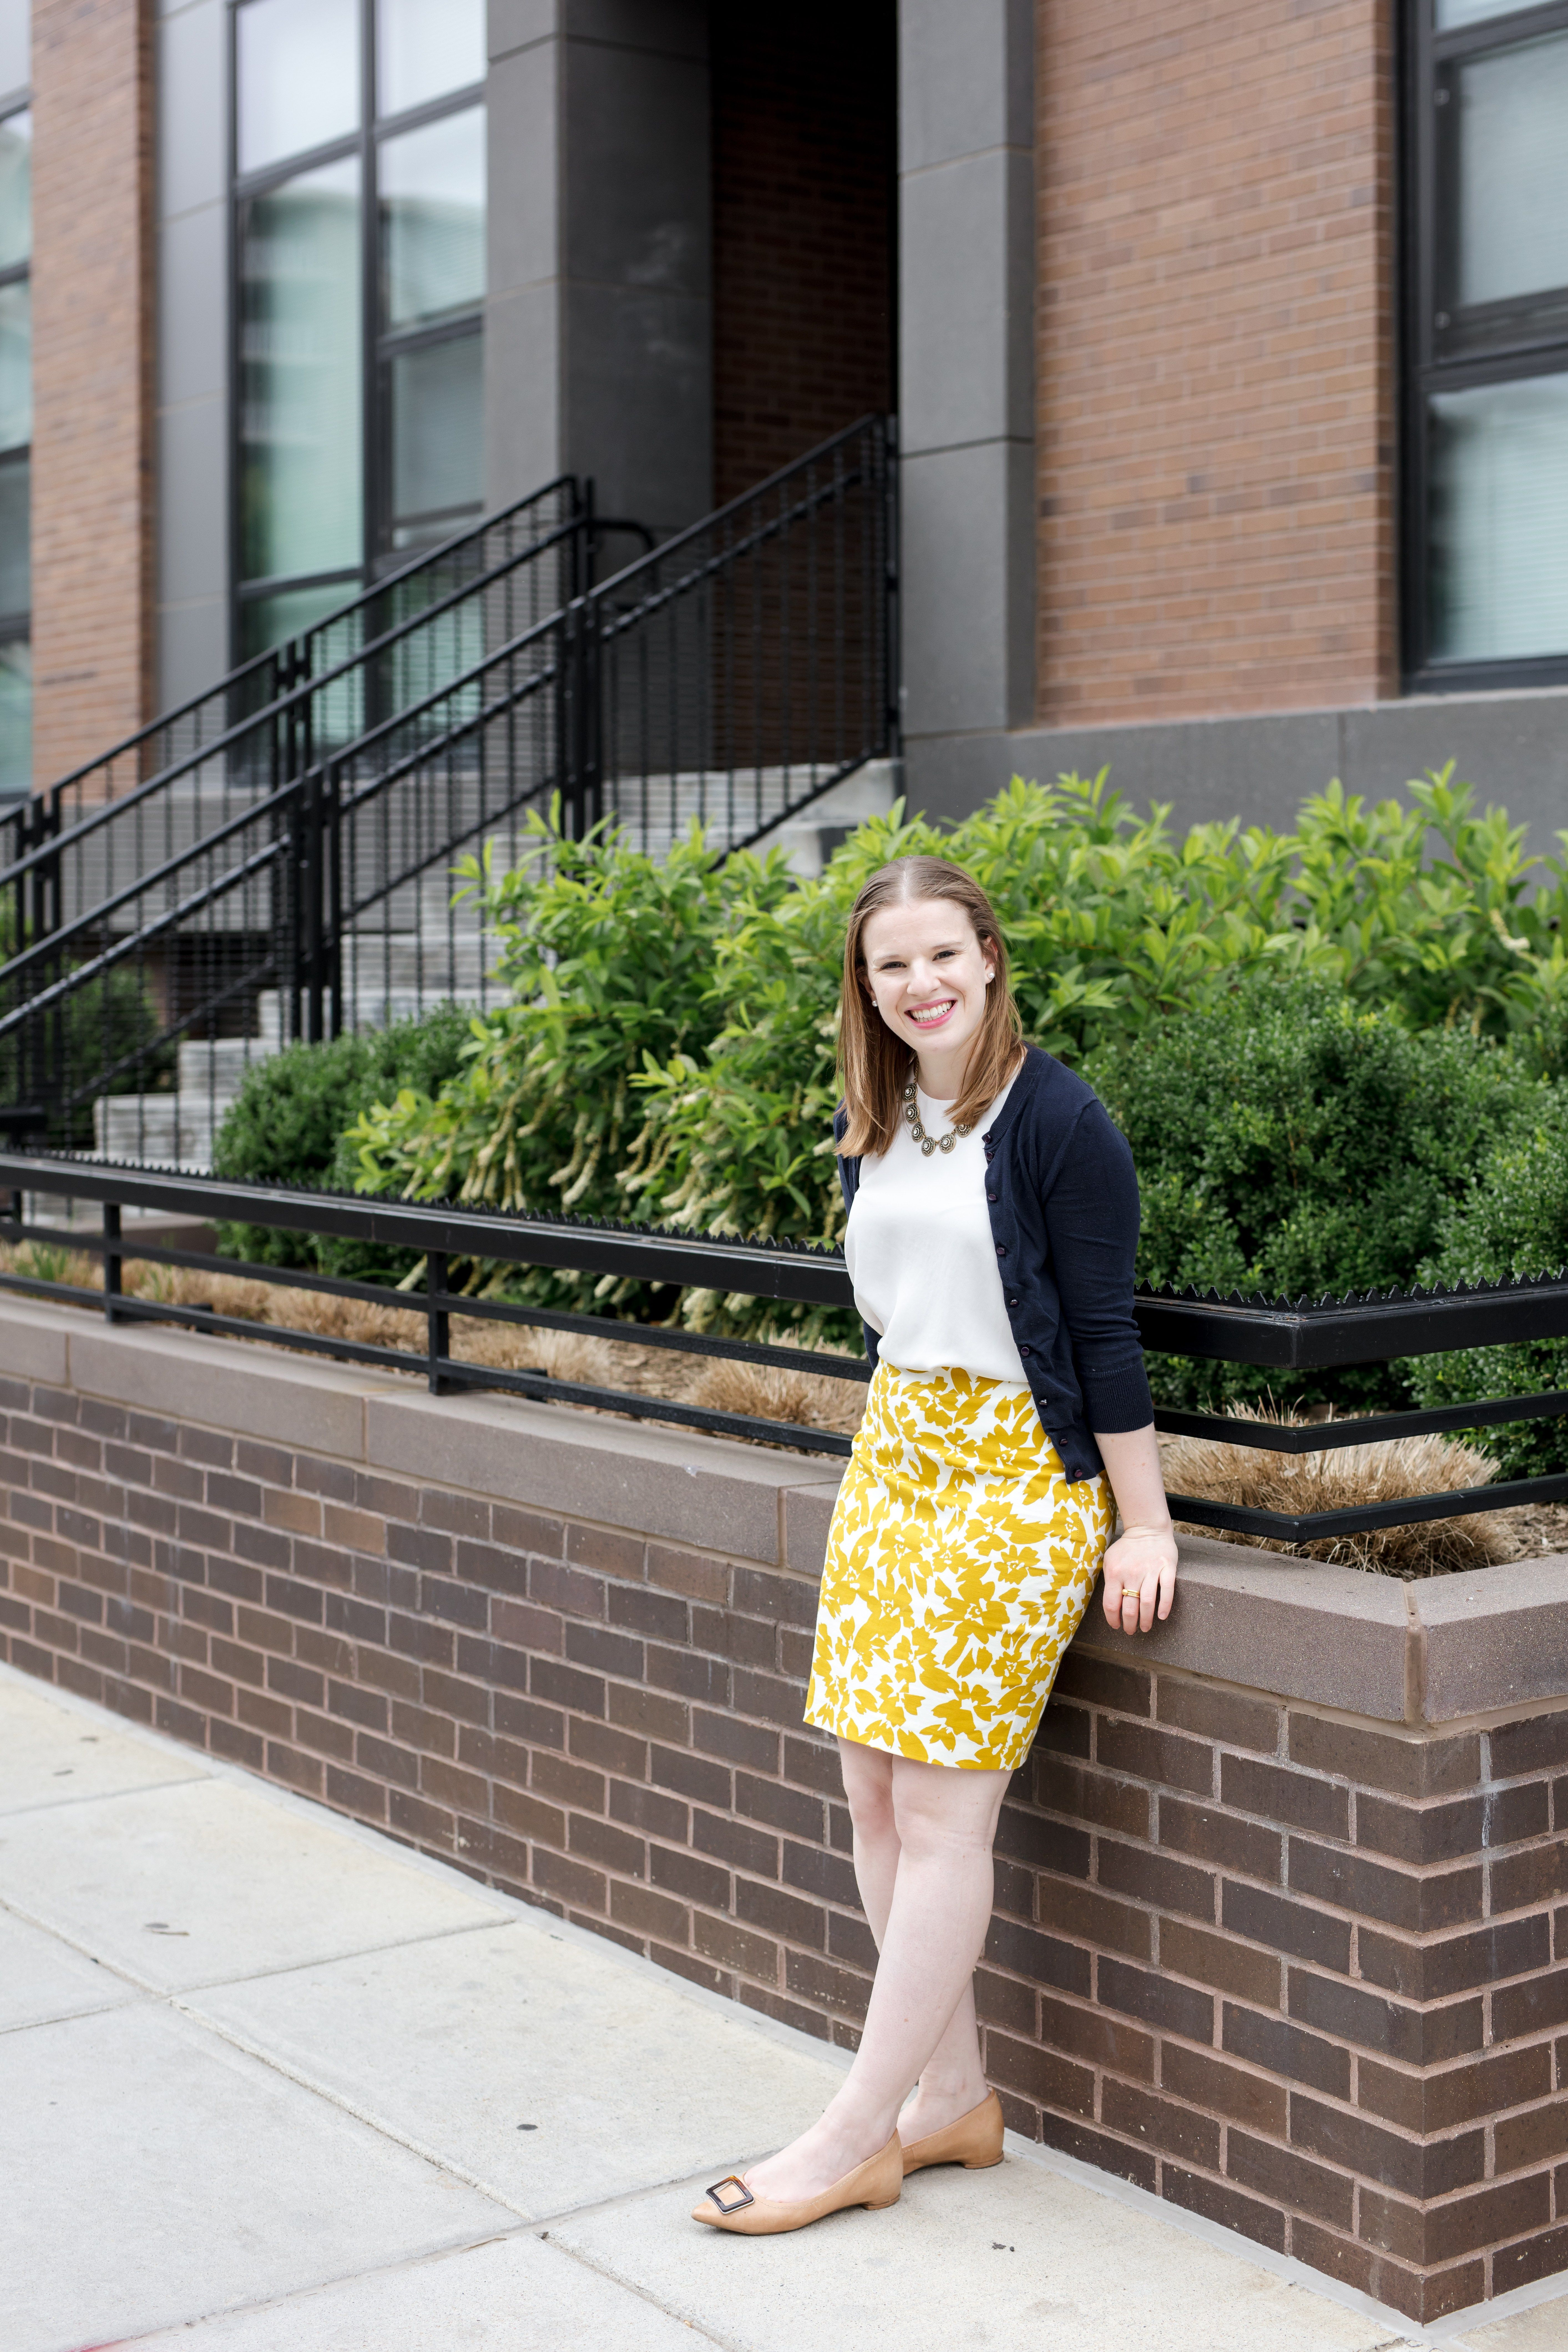 Female do what architects wear to work recommendations to wear for summer in 2019